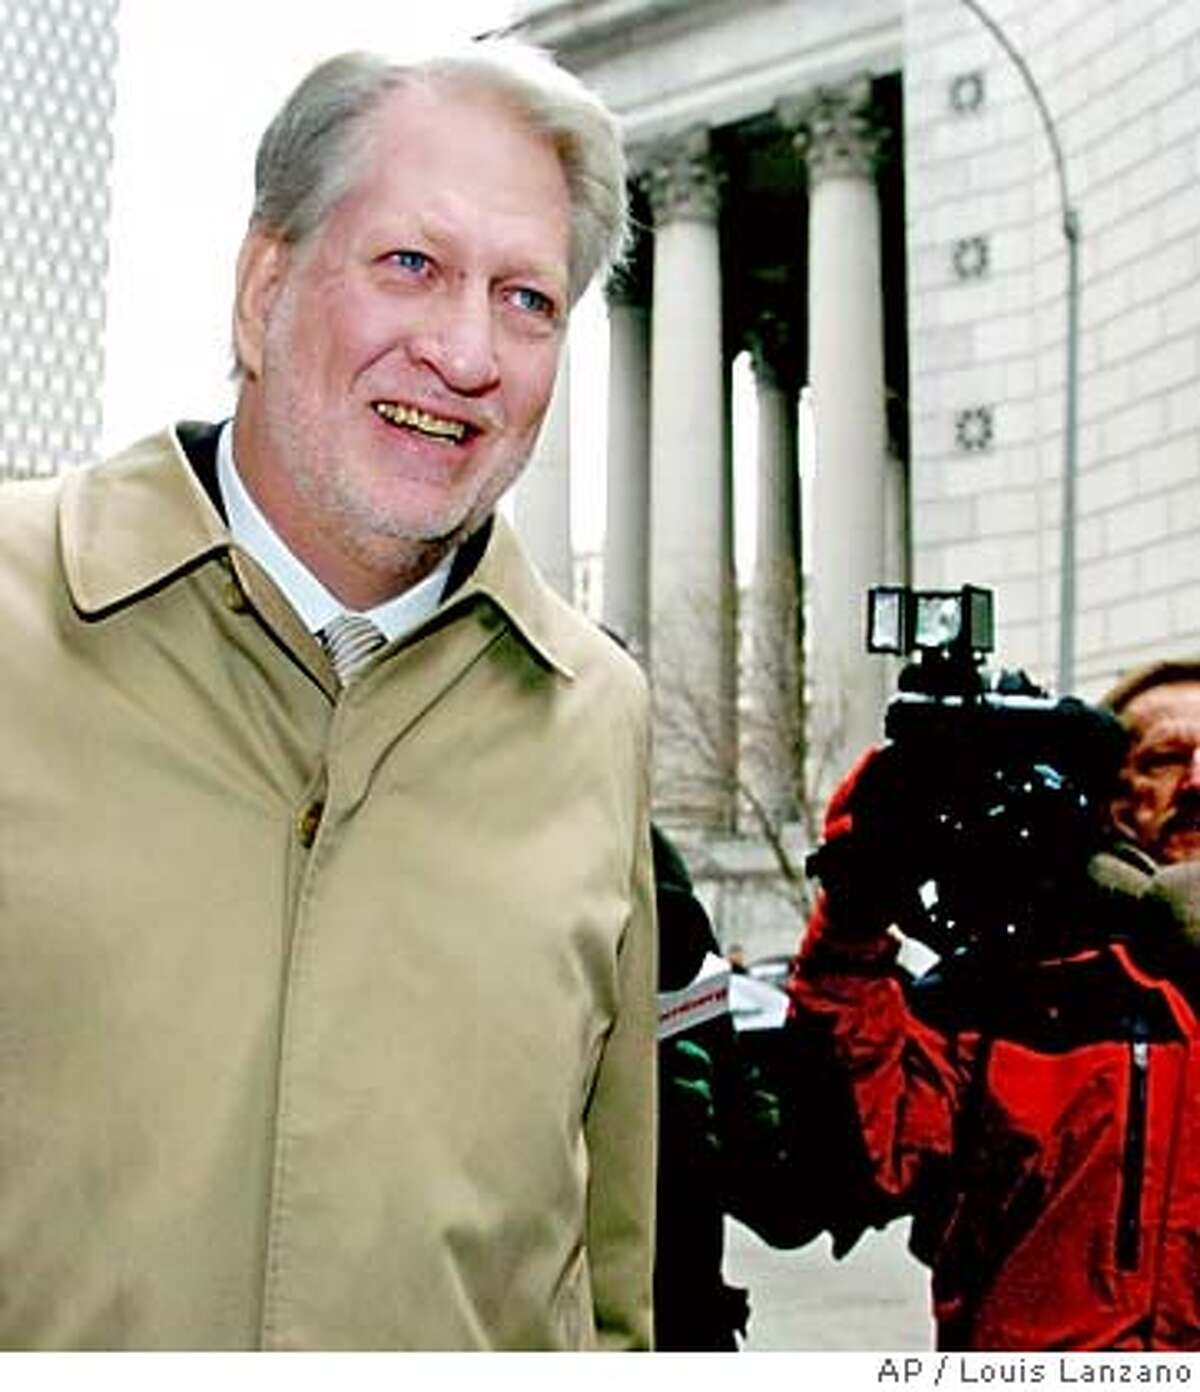 Bernard Ebbers, former CEO of WorldCom, enters Manhattan federal court, Monday, Feb. 28, 2005, in New York. Ebbers is expected to take the stand today accused of orchestrating an $11billion accounting scandal which bankrupted the once giant telecommunications company. (AP Photo/ Louis Lanzano)